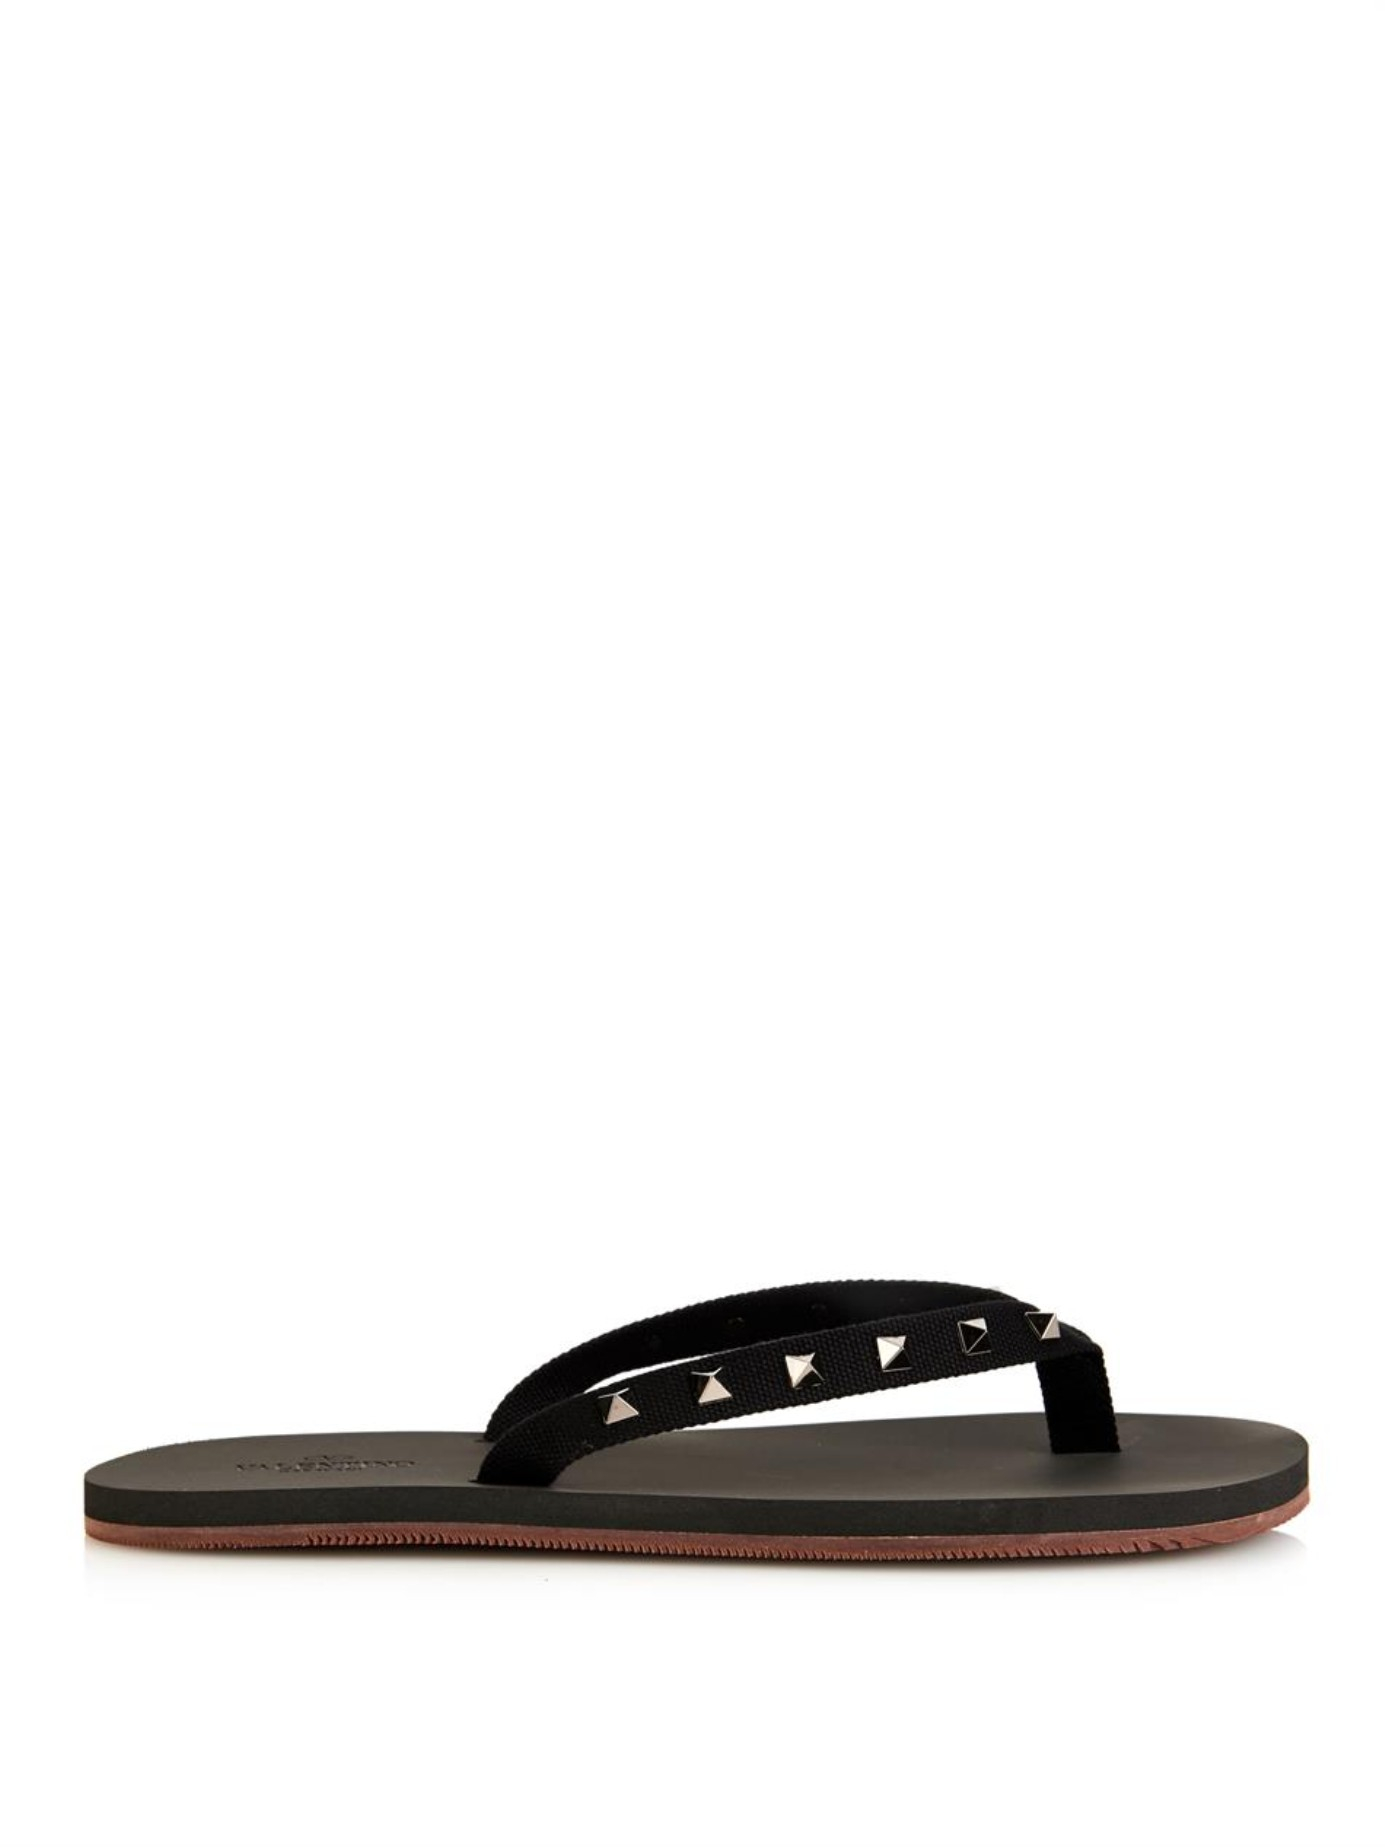 valentino studded canvas and rubber flip flops in black for men lyst. Black Bedroom Furniture Sets. Home Design Ideas